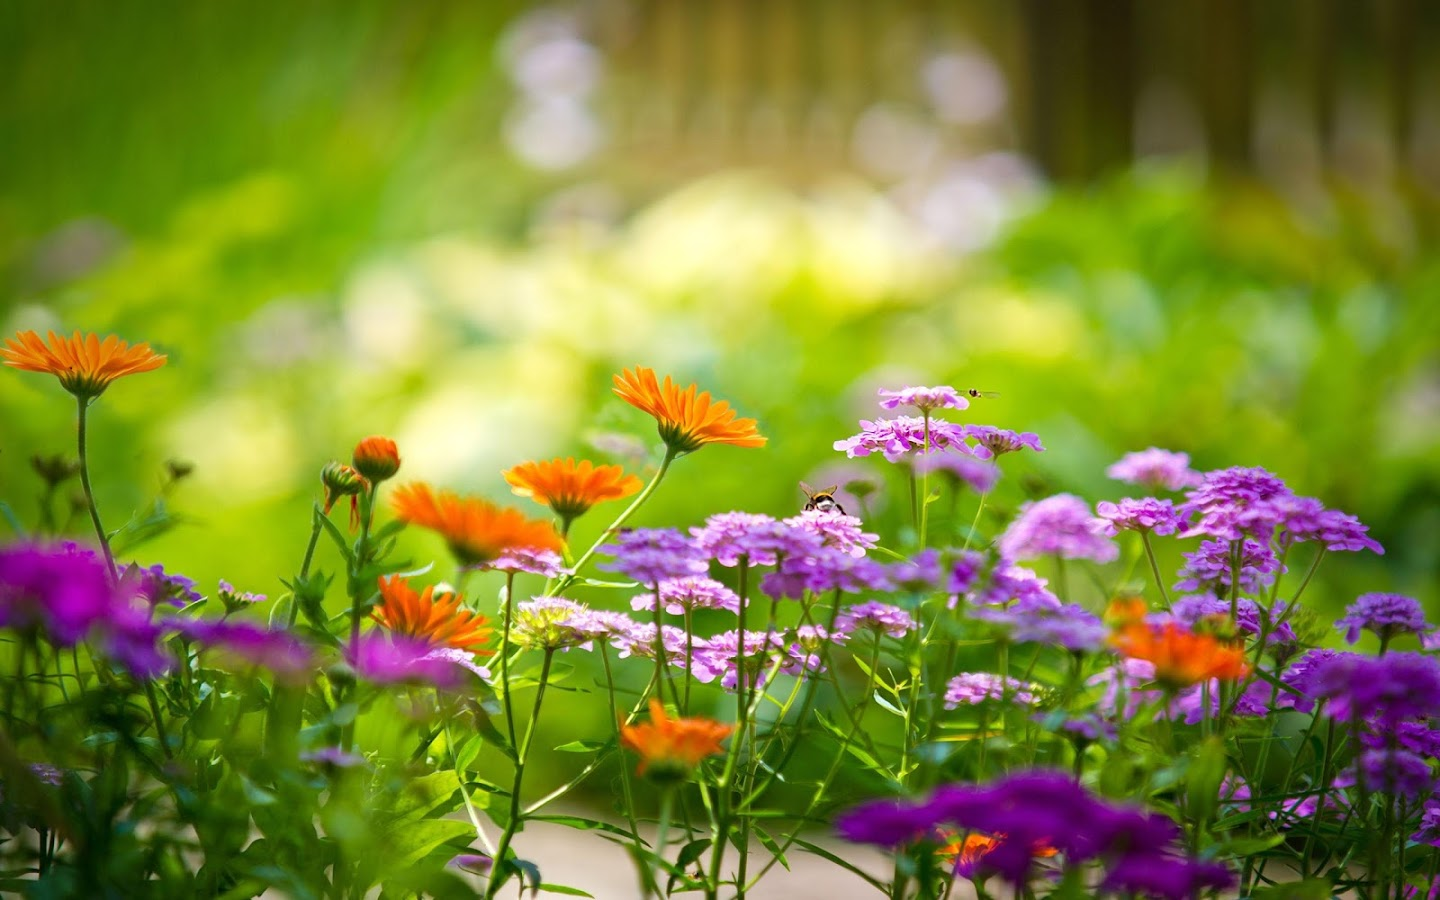 Garden live wallpaper hd flower background 3d 24 apk download garden live wallpaper hd flower background 3d 24 screenshot 6 izmirmasajfo